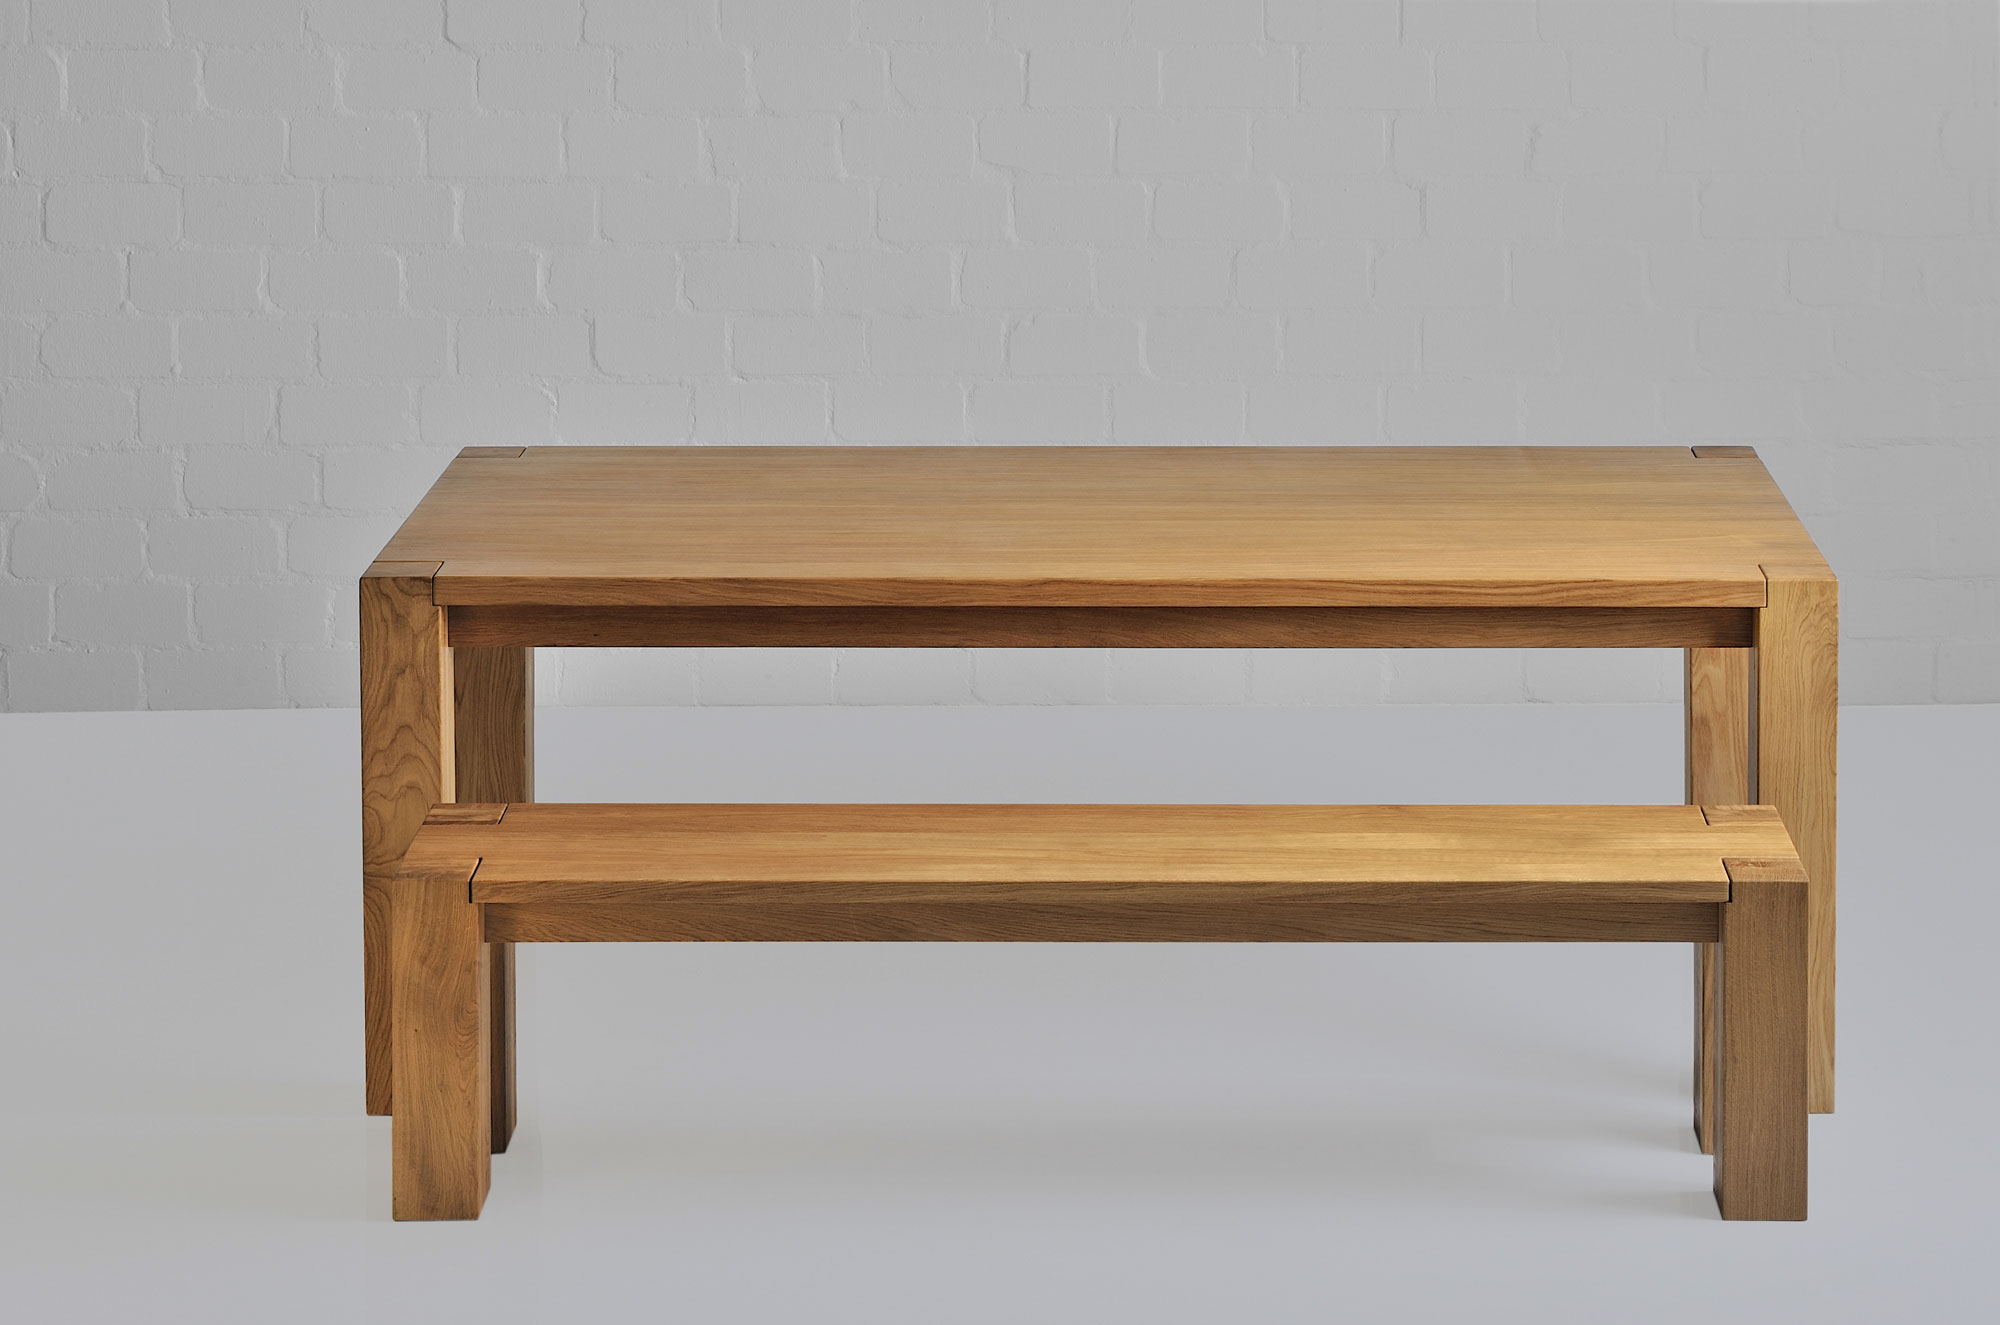 Rustic Oak Table TAURUS 4 B11X11 1368 custom made in solid wood by vitamin design